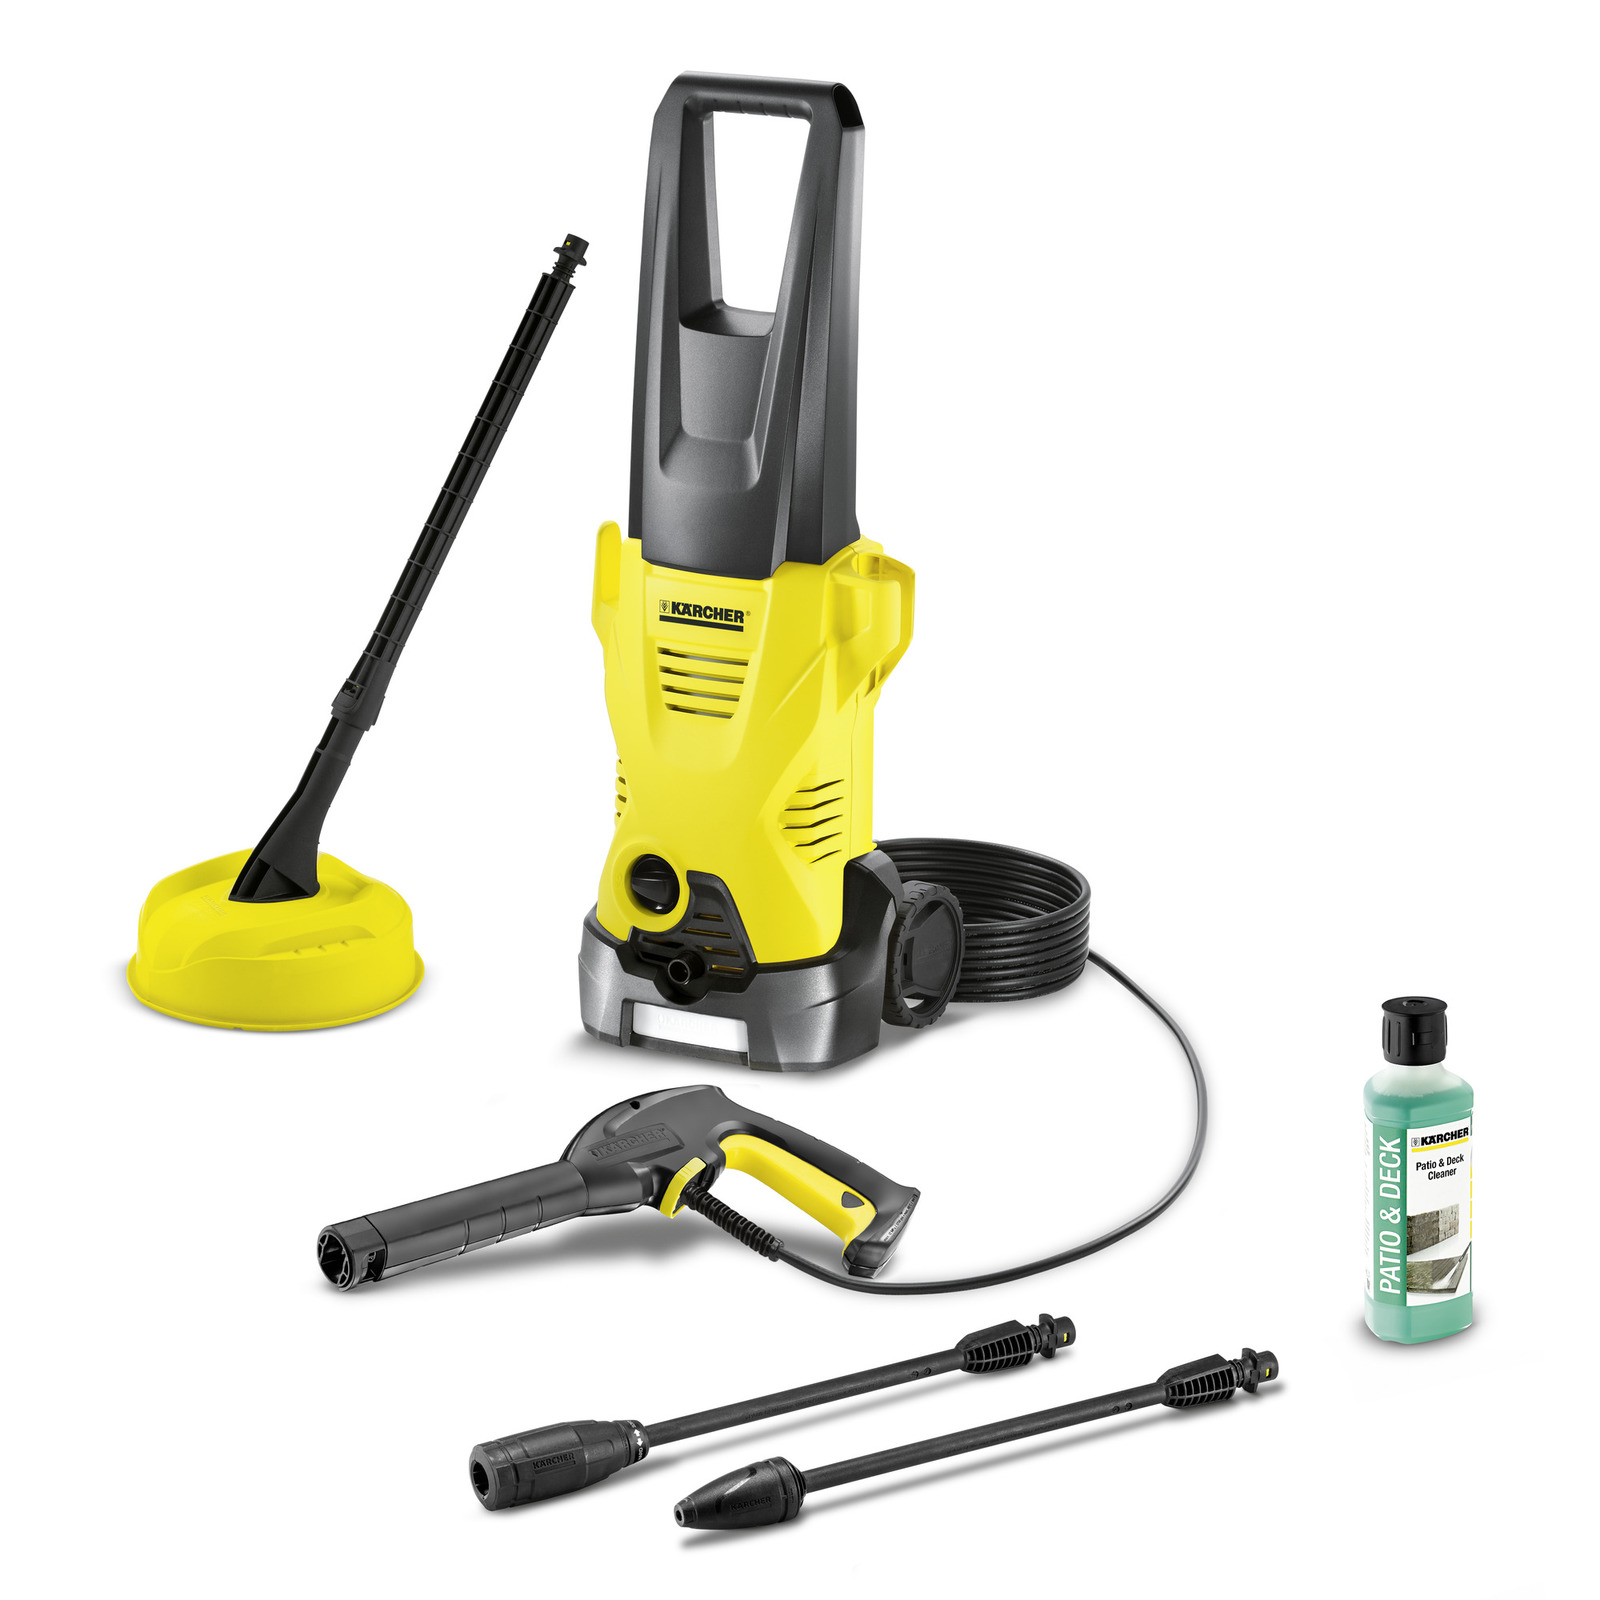 k2 premium home pressure washer k rcher uk rh kaercher com Clip Art User Guide User Training